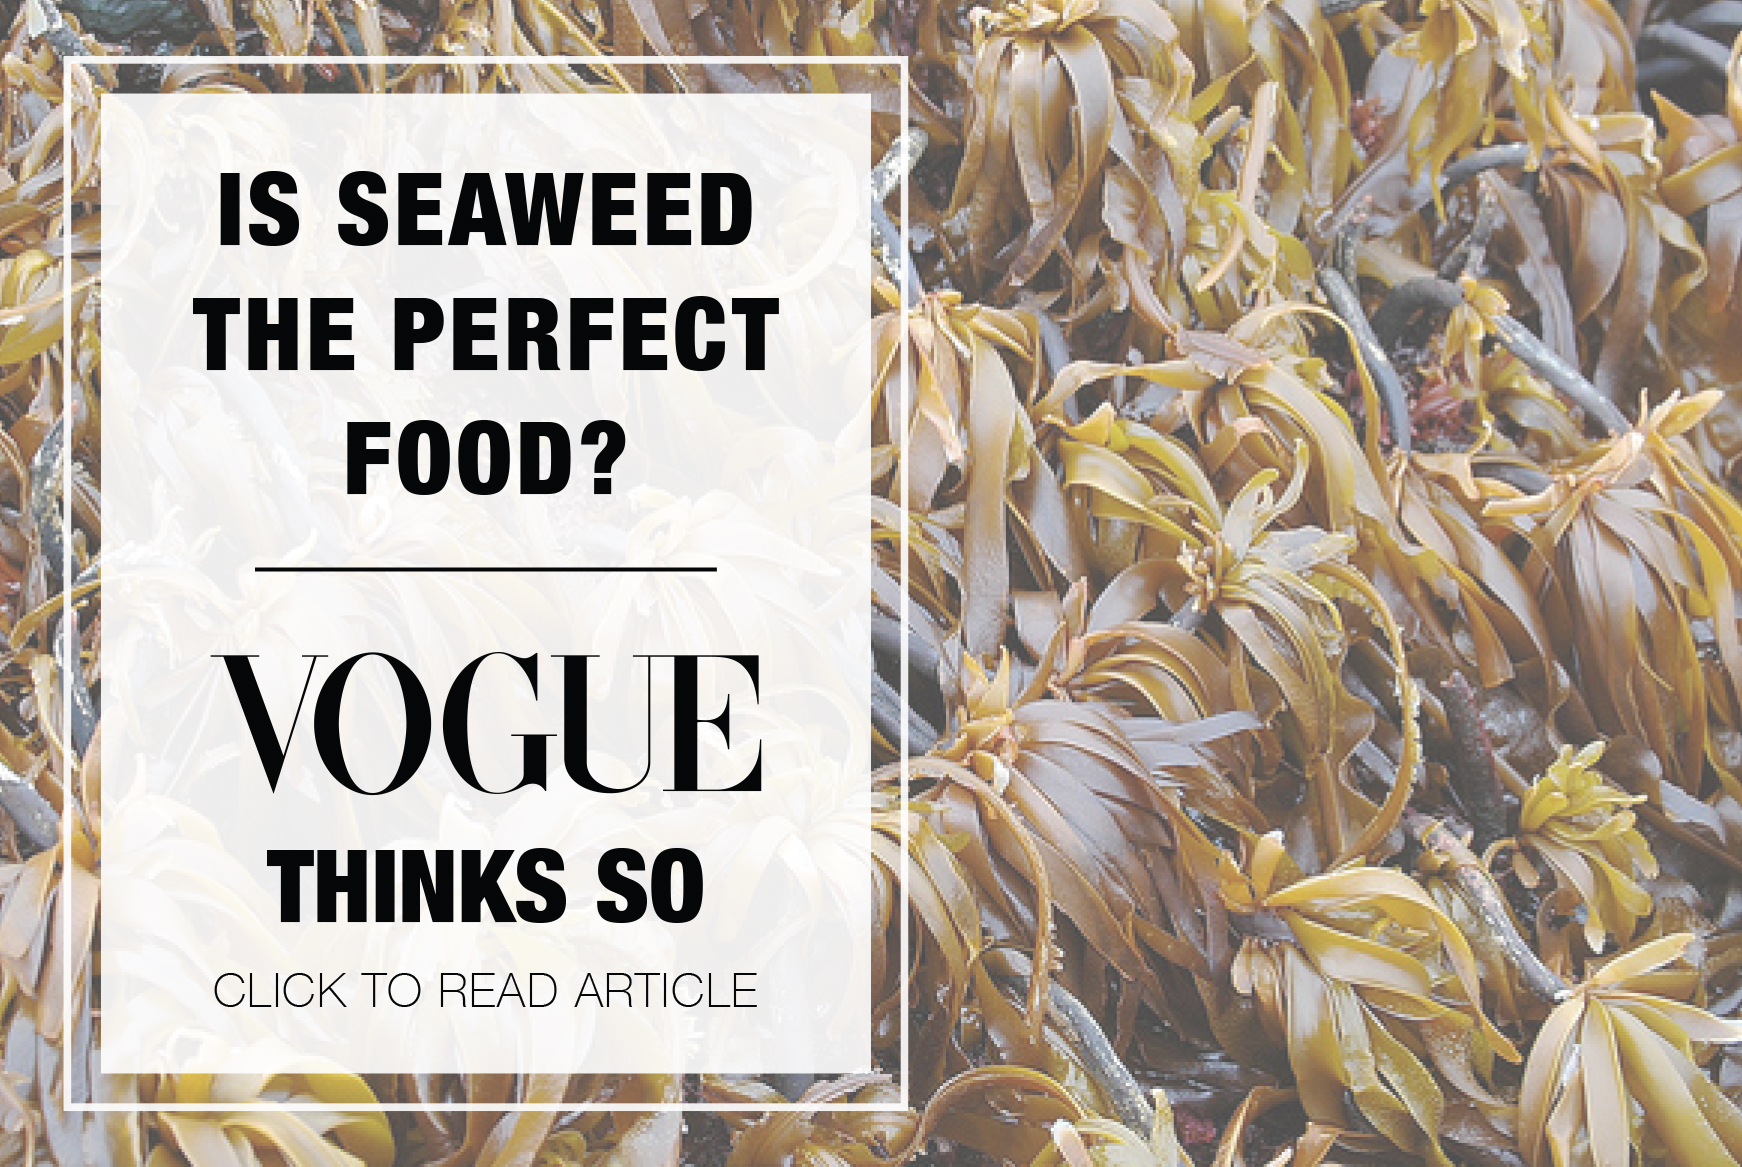 seaweed_article_img.jpg